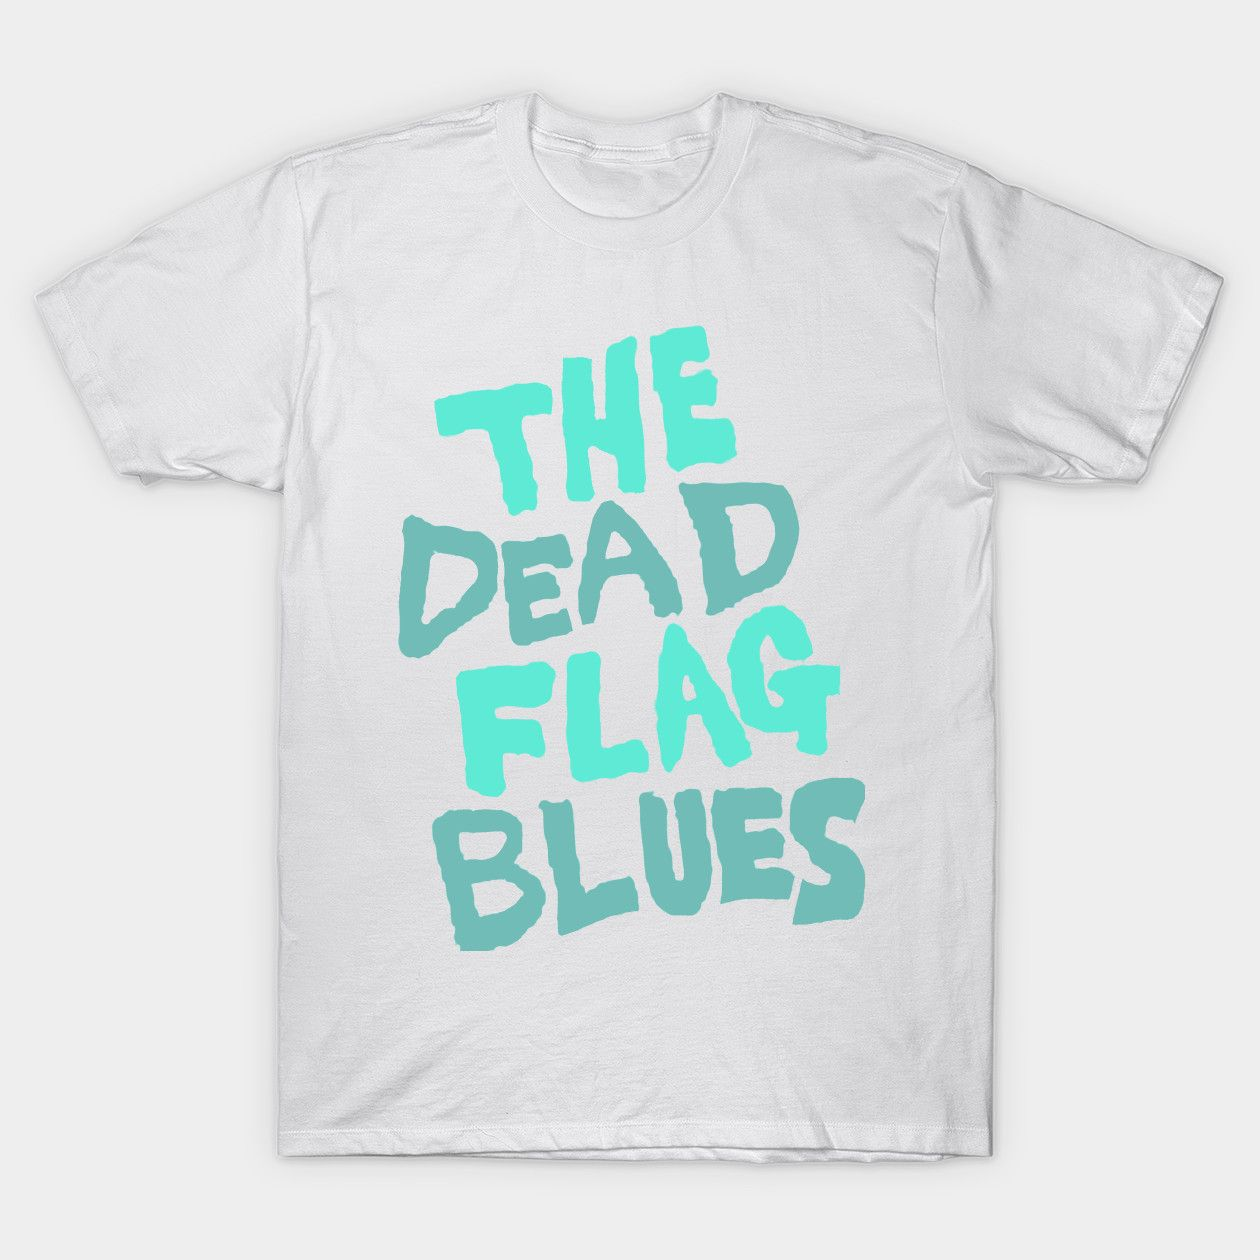 The Dead Flag Blues Godspeed You Black Emperor Classic T Shirt Classic T Shirts Mens Tops